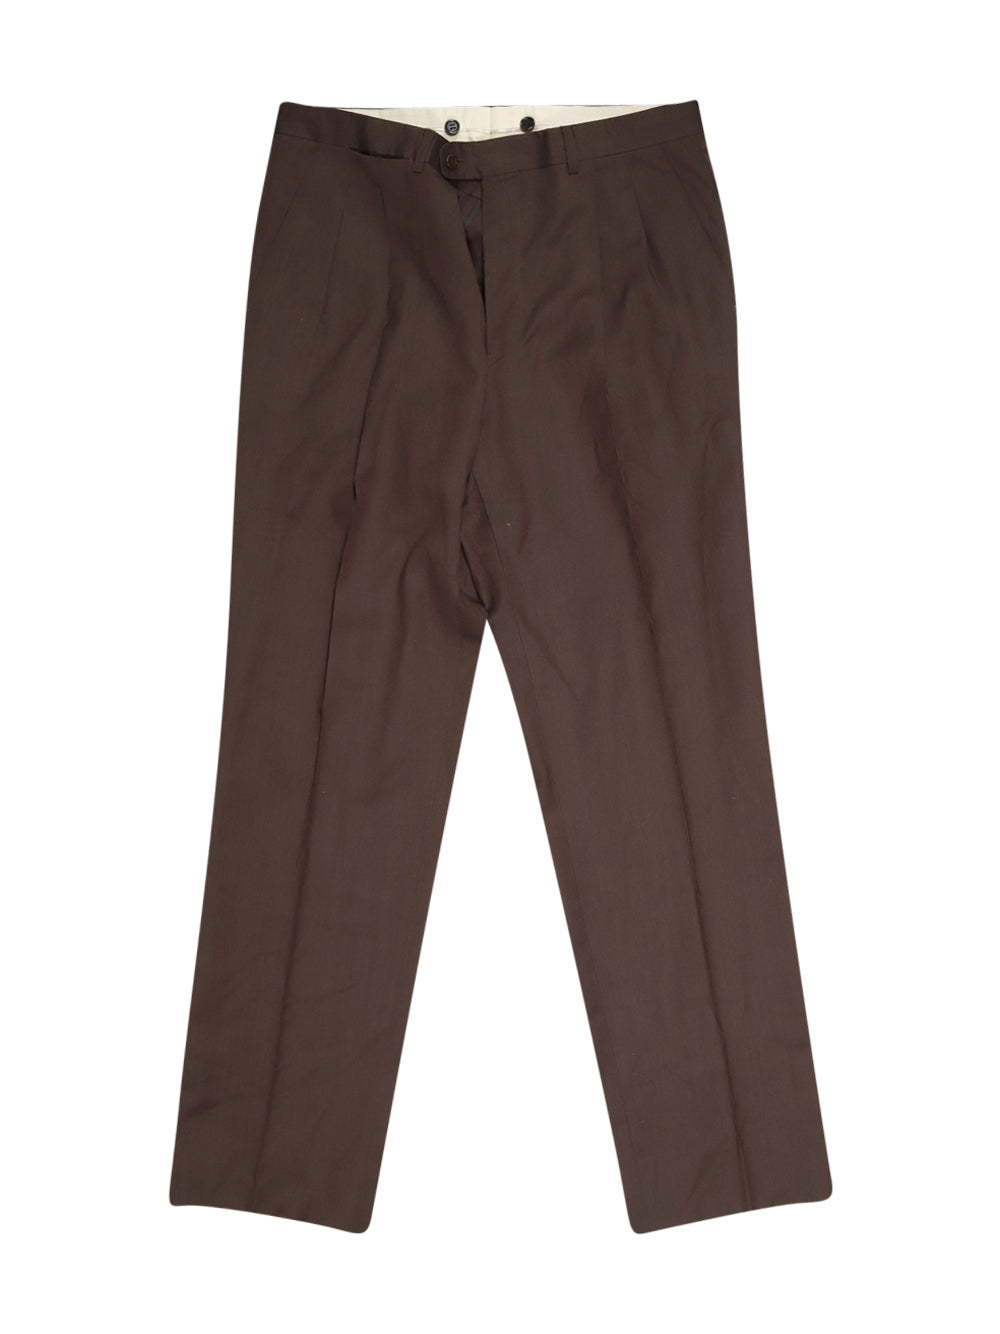 Front photo of Preloved mabitex Black Man's trousers - size 40/L